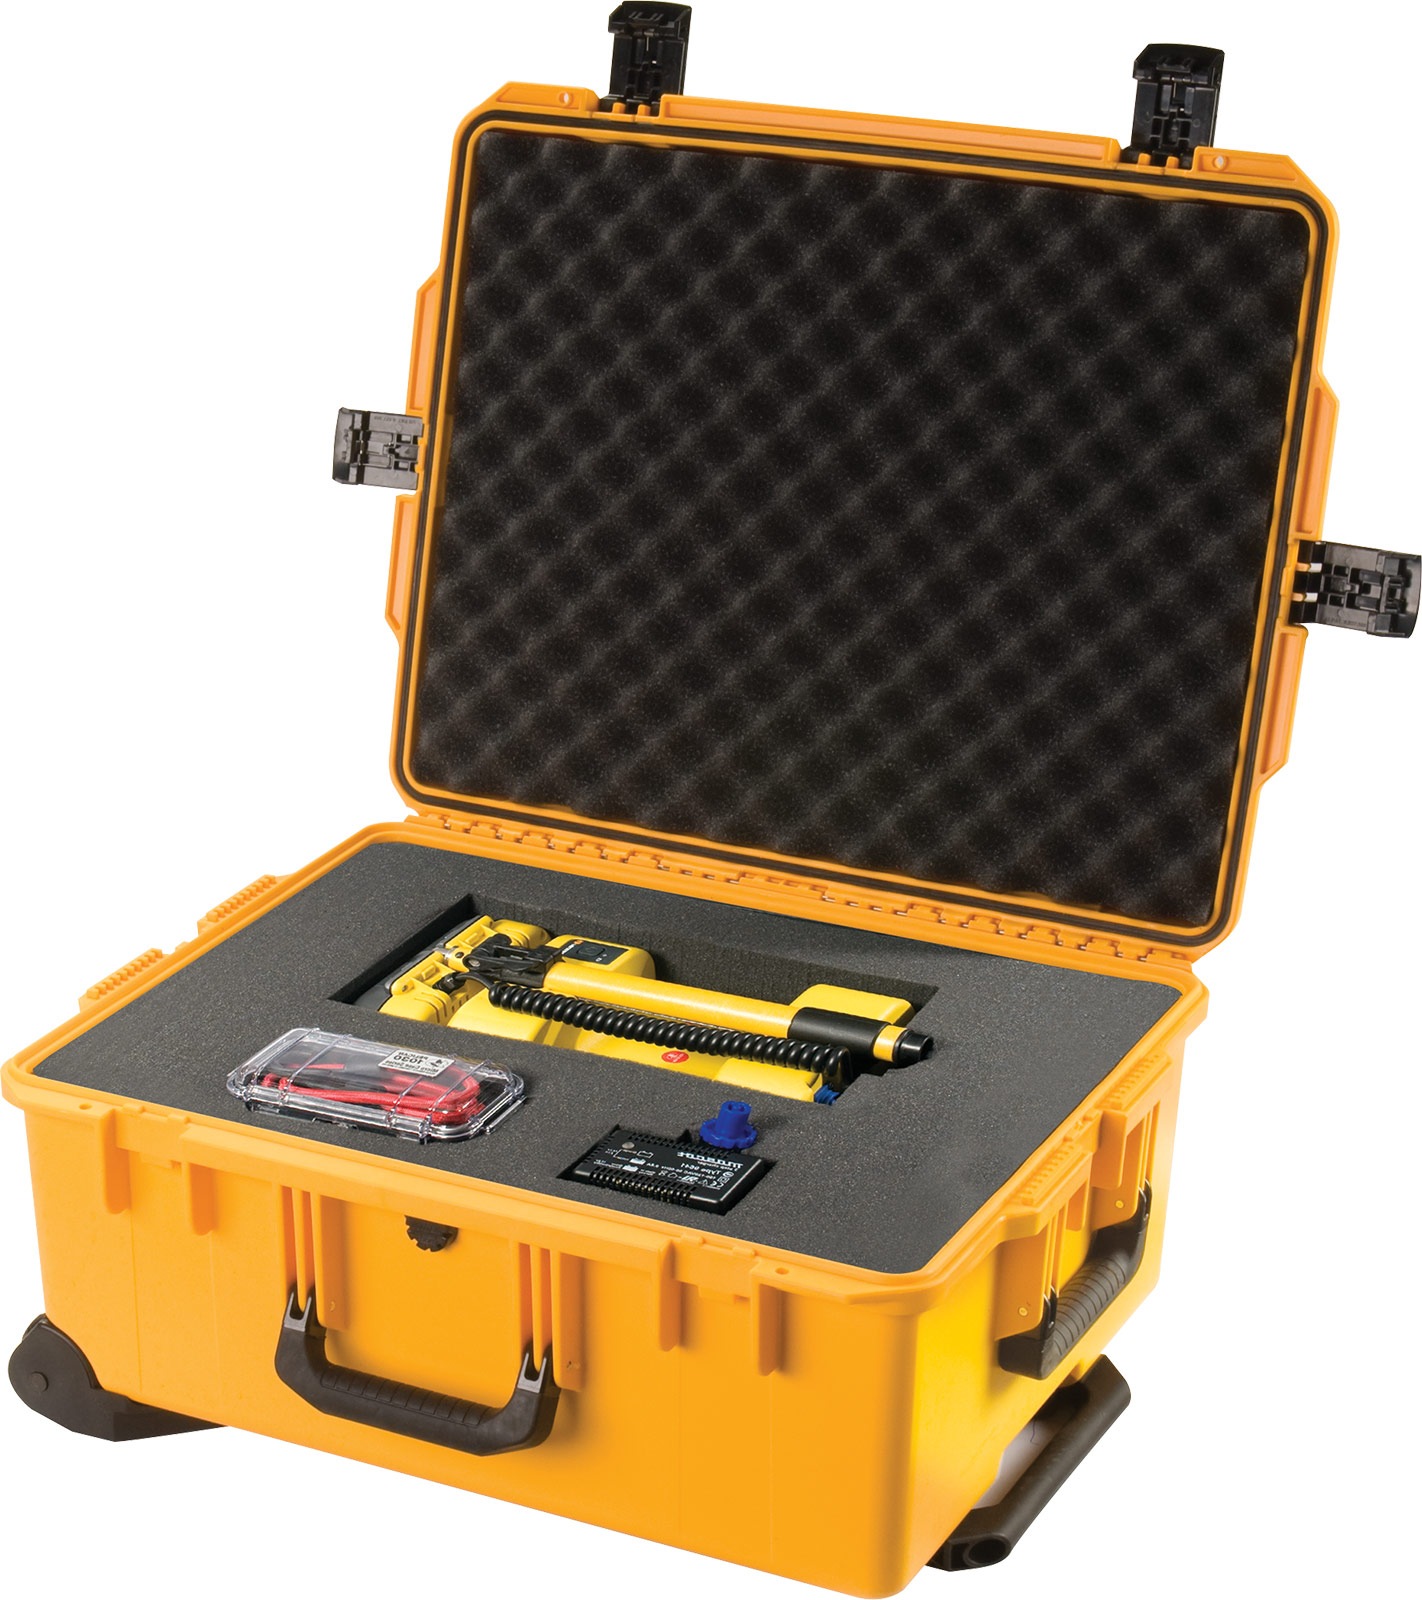 pelican storm im2720 industrial safety light case